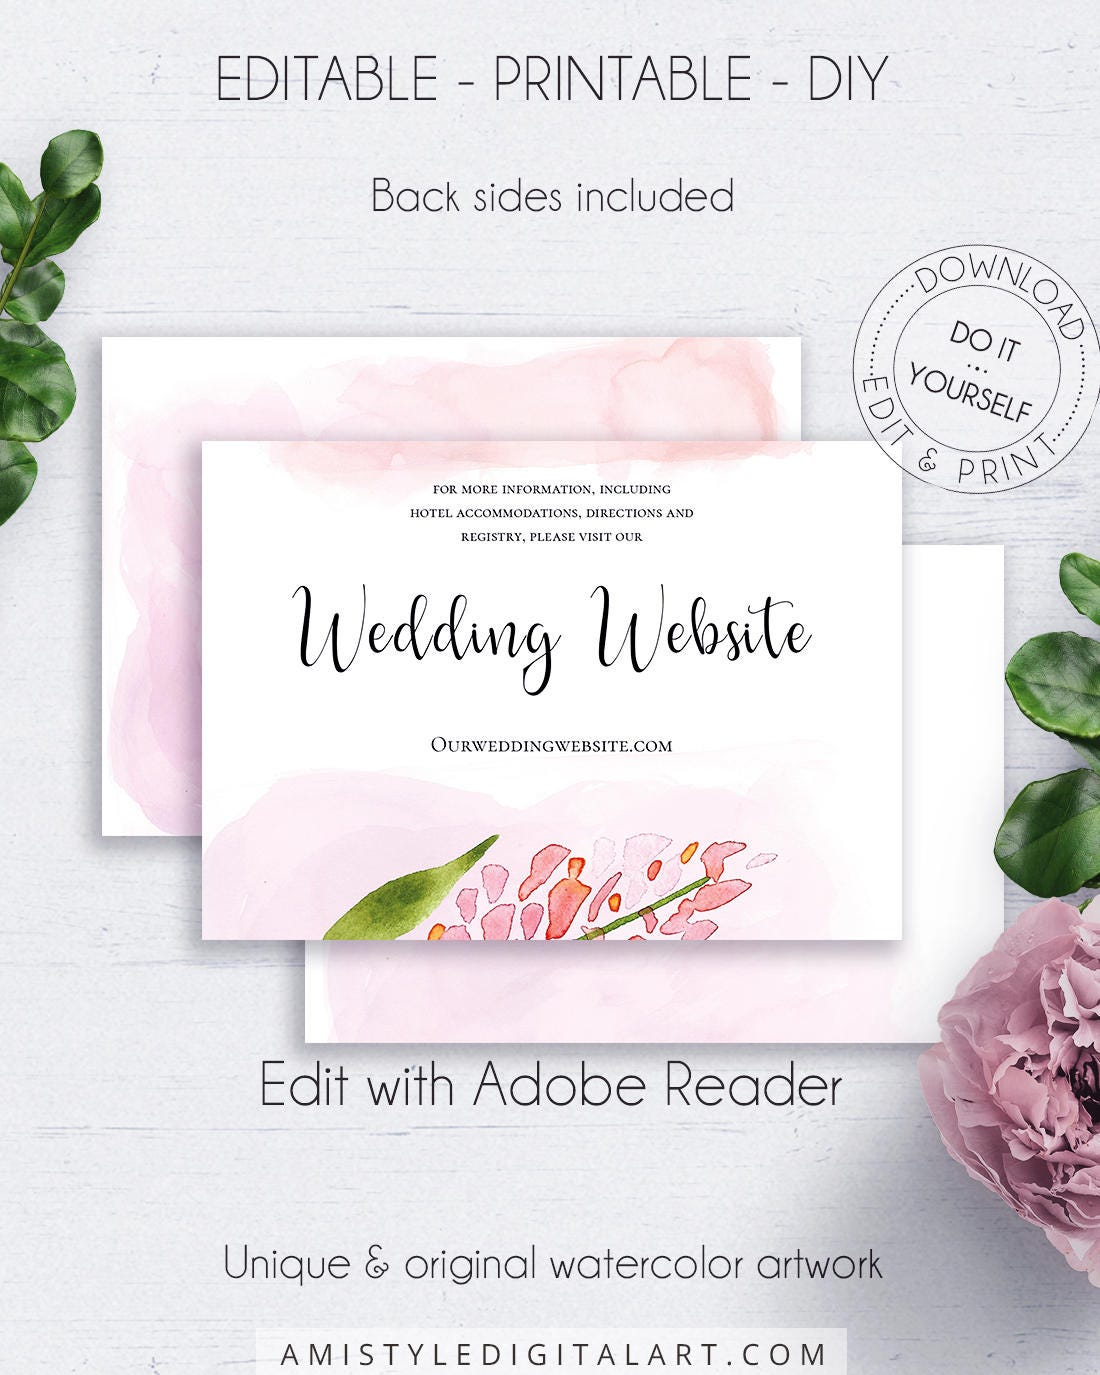 Blush wedding floral website card watercolor flowers details zoom solutioingenieria Image collections